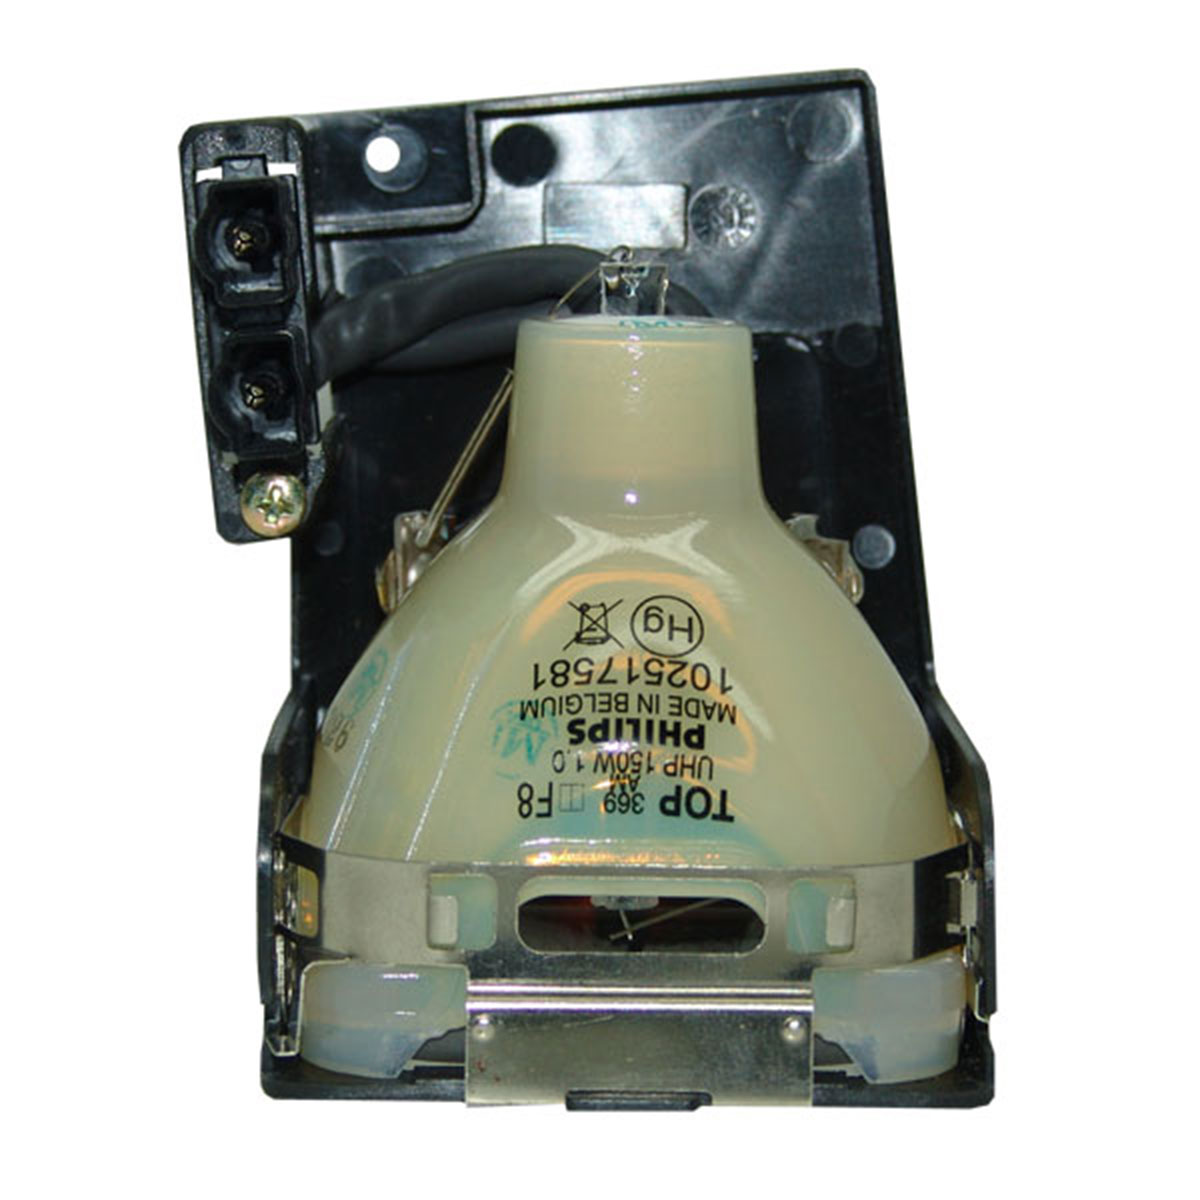 Original Philips Projector Lamp Replacement with Housing for Panasonic ET-SLMP37 - image 1 of 5